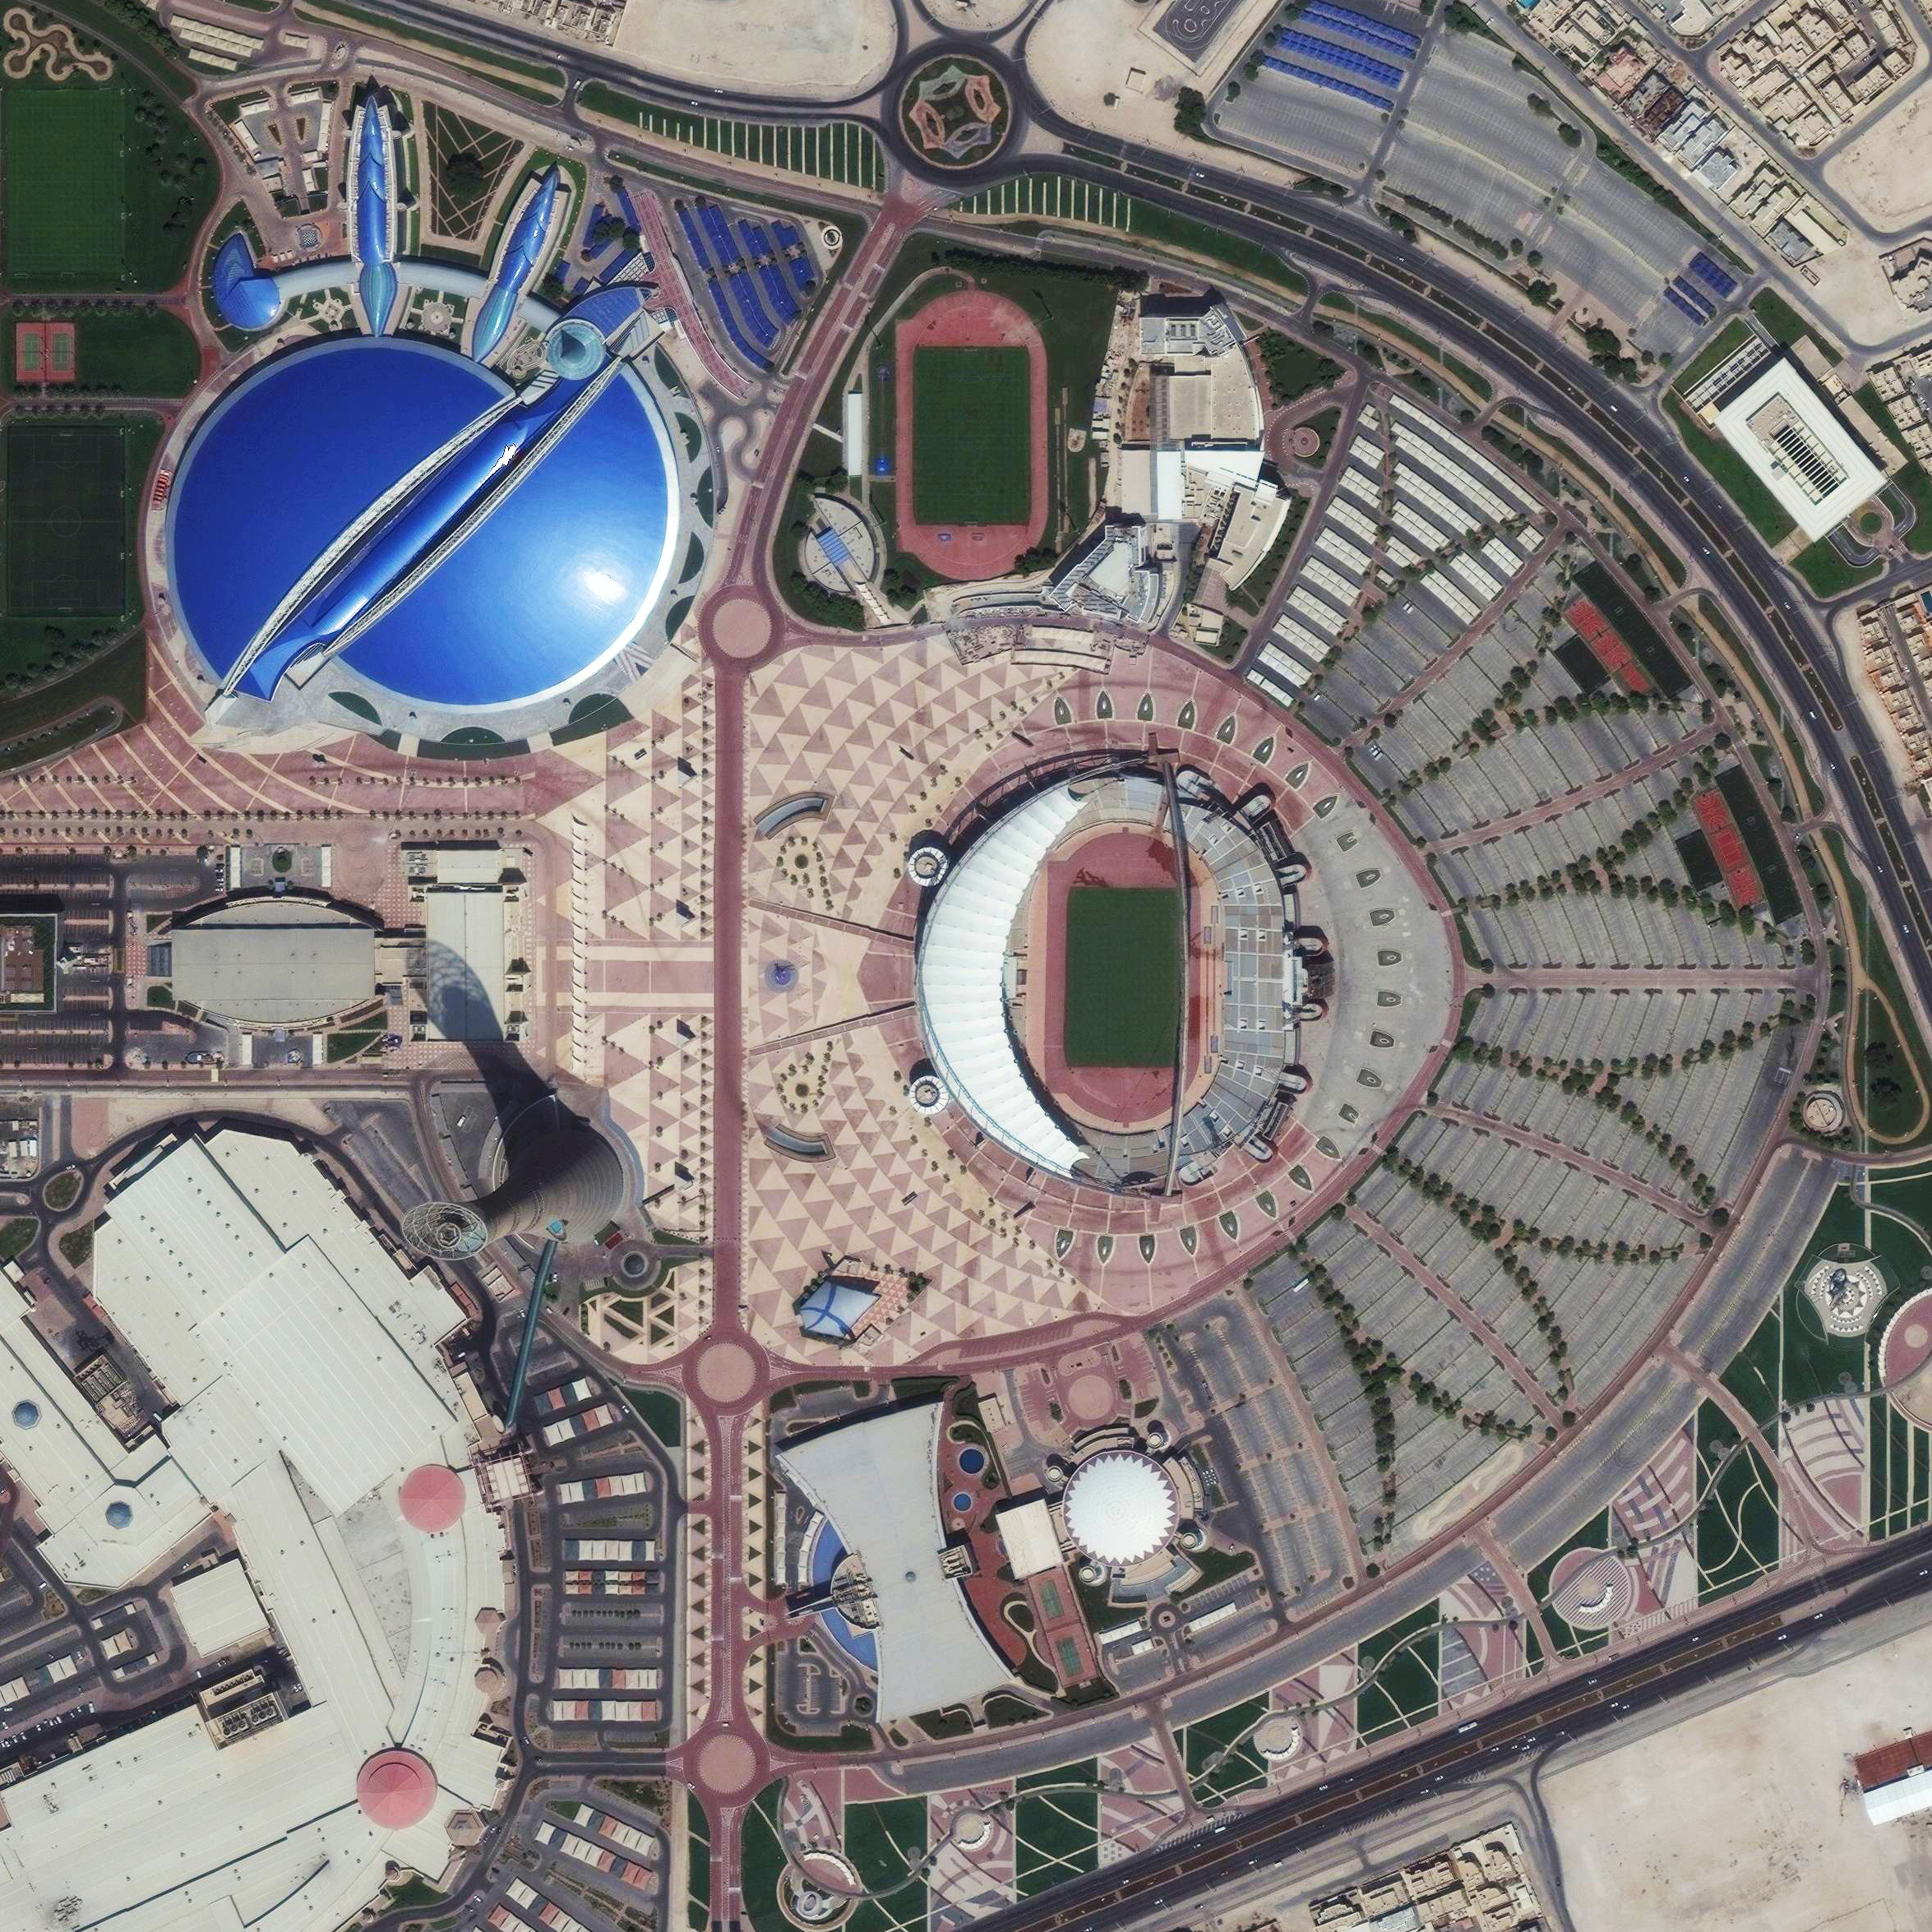 10/21/2015   Khalifa International Stadium   Doha, Qatar  25°15′49.19″N 51°26′53.08″E     Khalifa International Stadium is a massive sports complex in Doha, Qatar. The facility is currently undergoing a massive renovation and expansion in advance of the 2022 World Cup, which will be hosted by the Qataris. The blue structure adjacent to the stadium is Aspire Academy, a youth sports school.